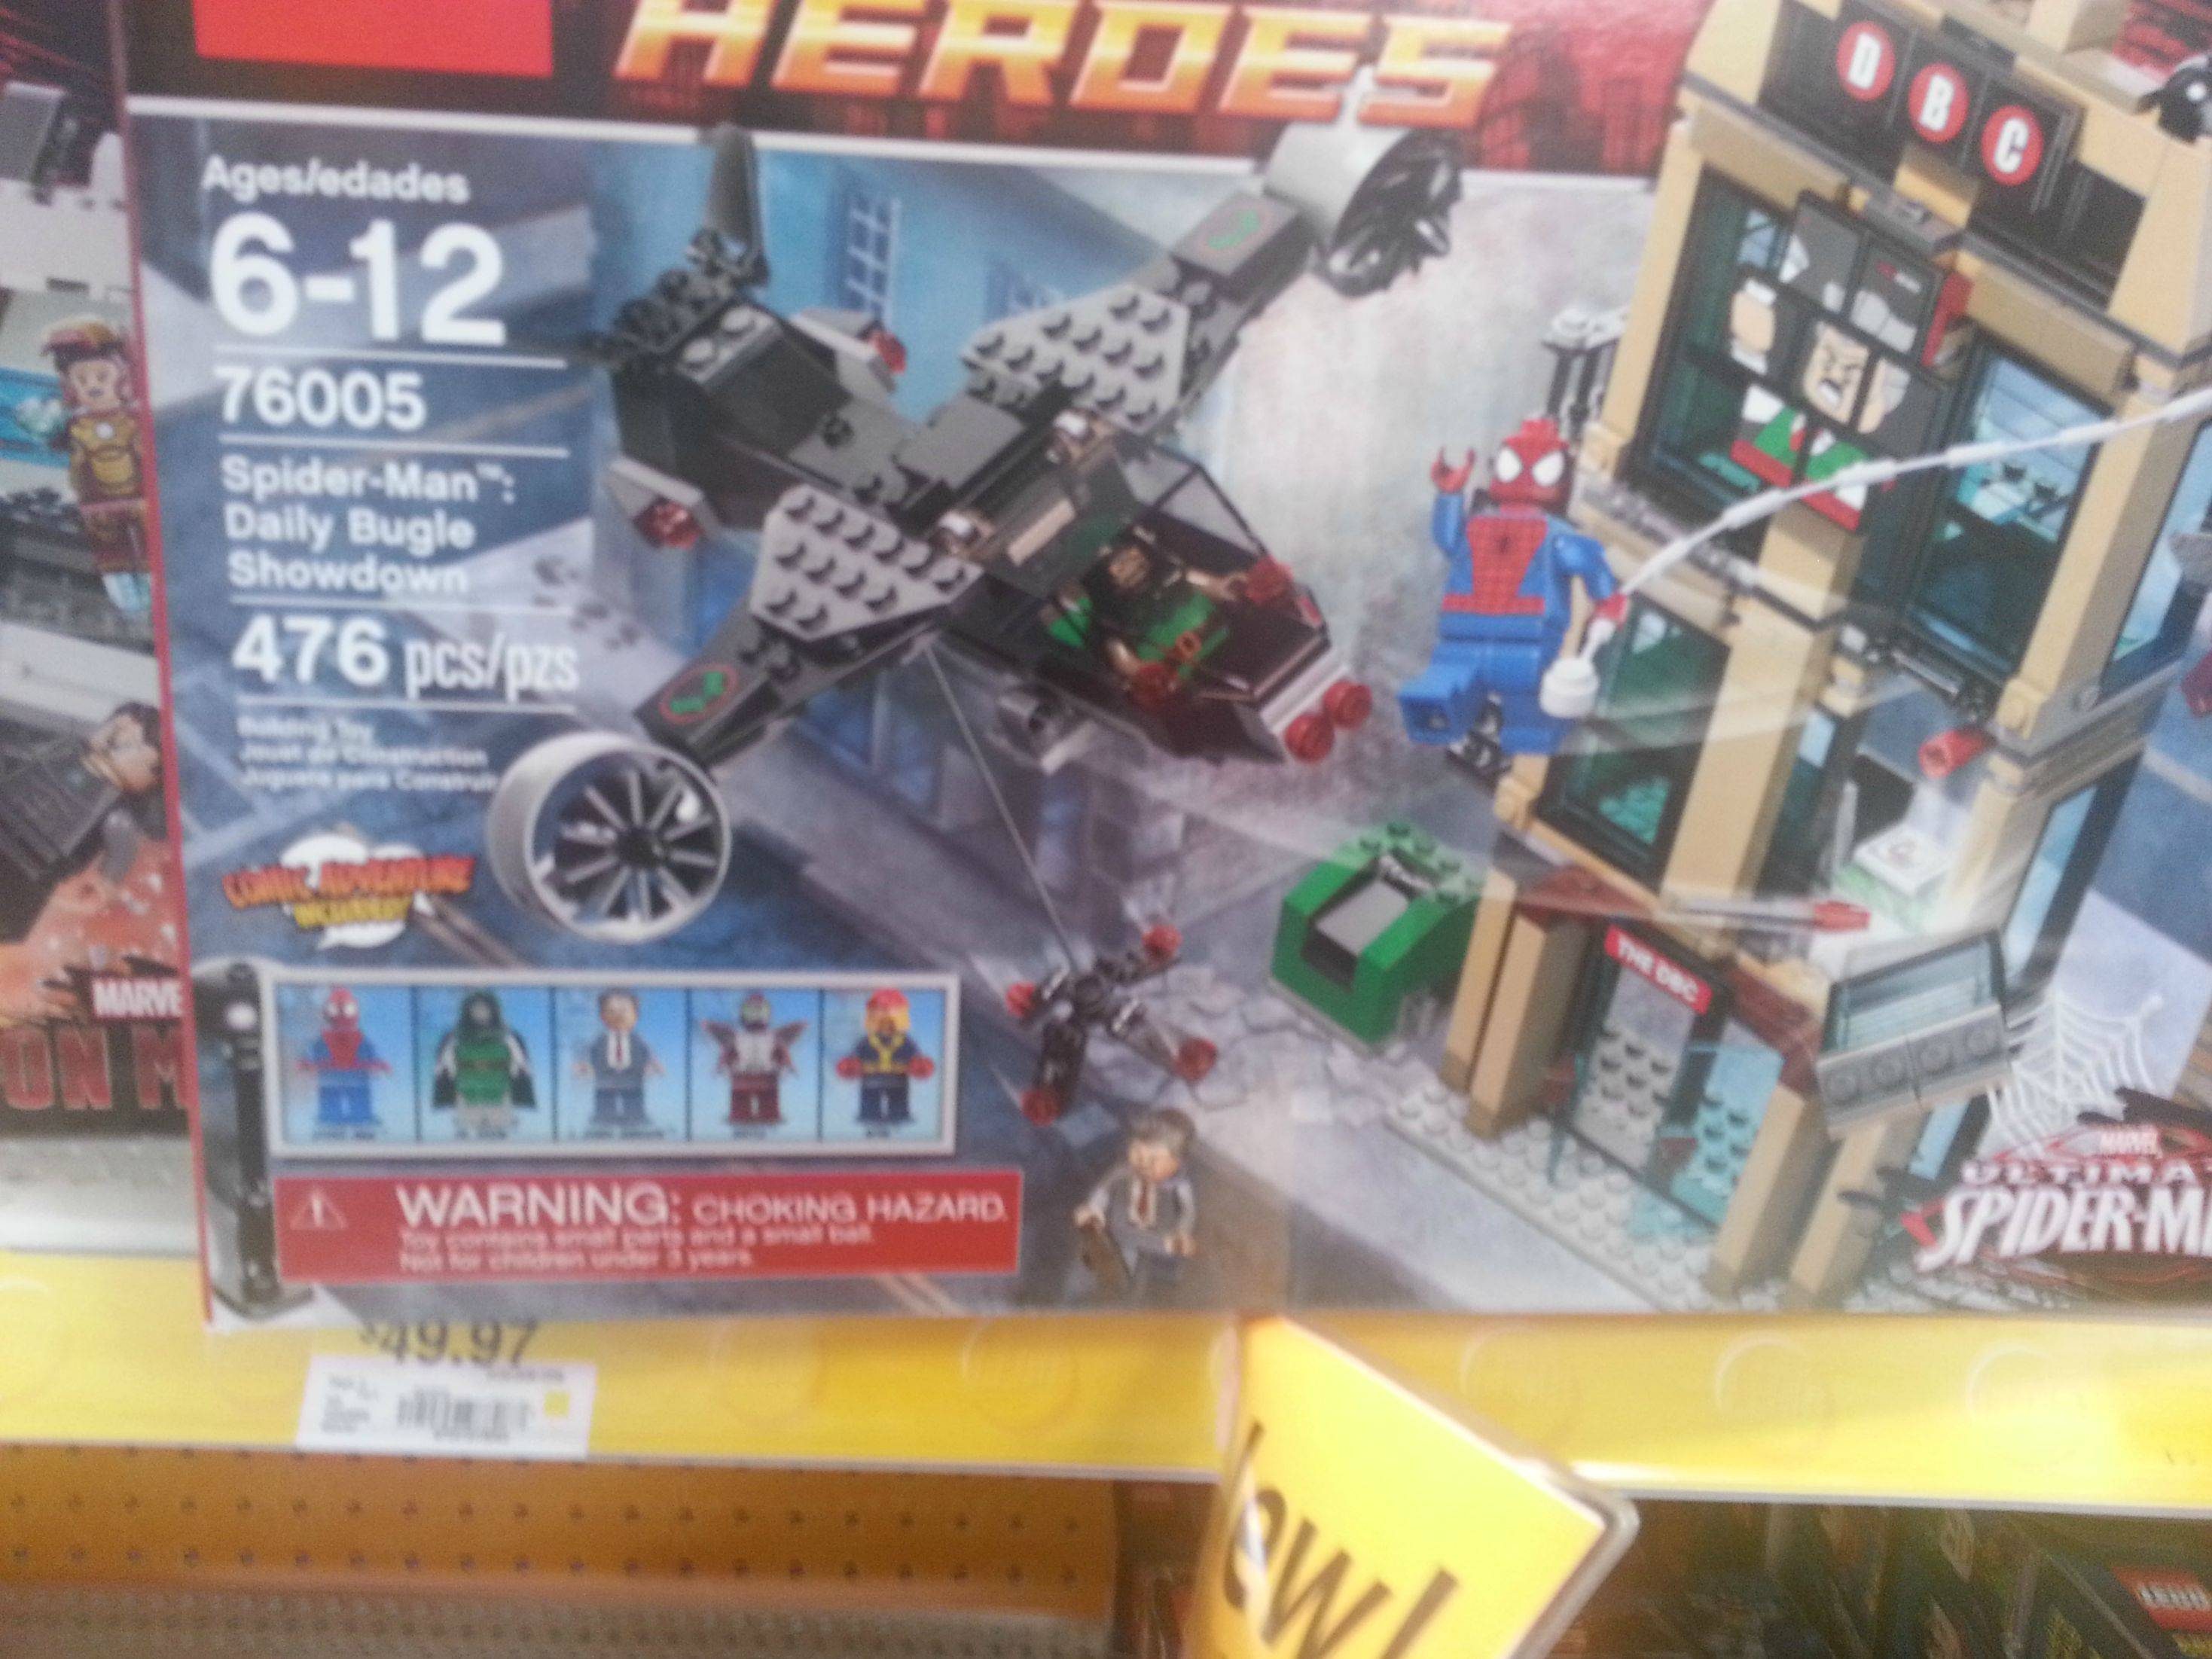 Sets Iron The Marvel 3 Man Walmart Usm At New And Found Lego SzGpqUVM